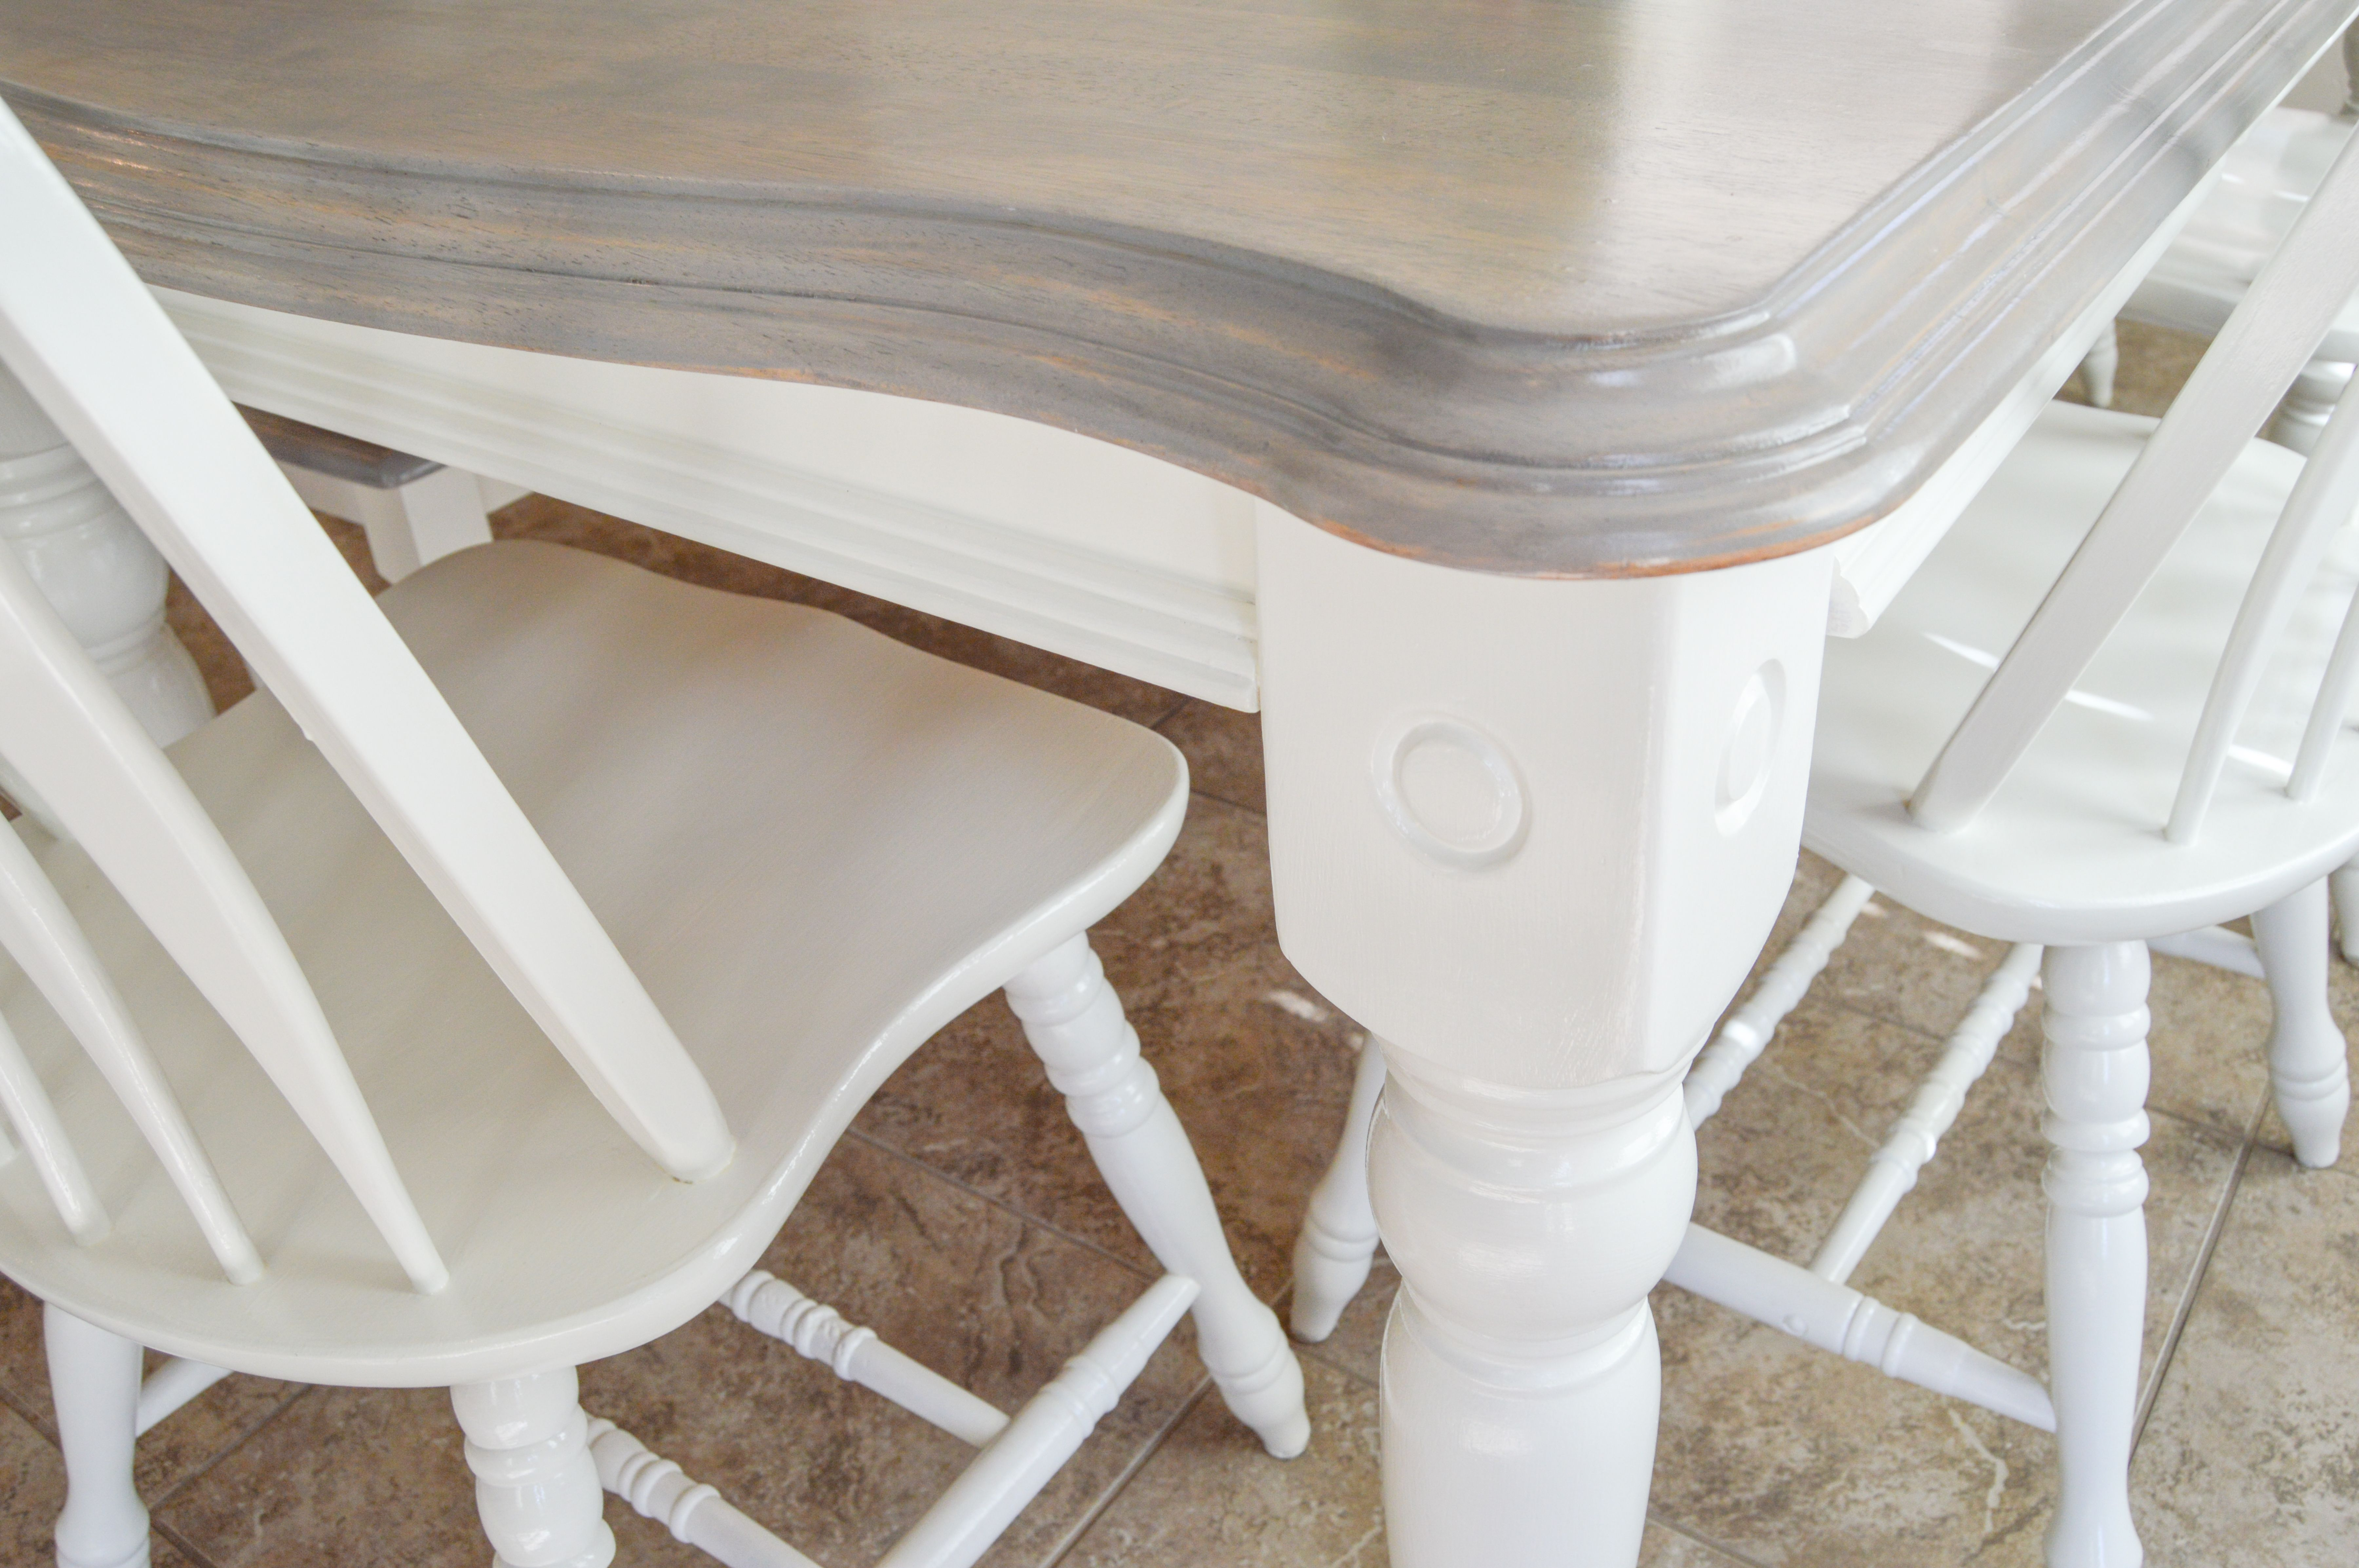 Diy Grey Paint Wash Dining Table Chairs Grey Dining Tables Grey Kitchen Table Dining Table Chairs